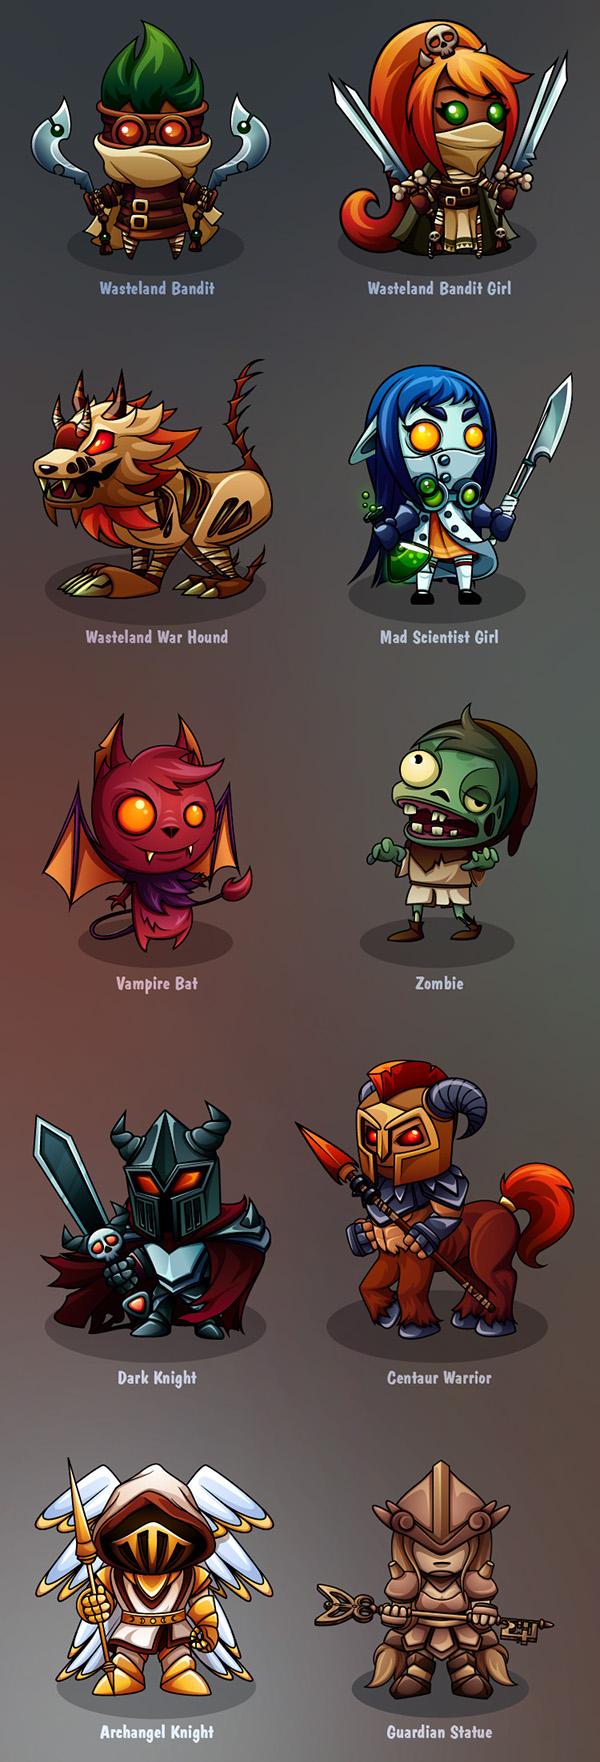 Design A Cartoon Character Game : Characters design mobile turn based game on behance